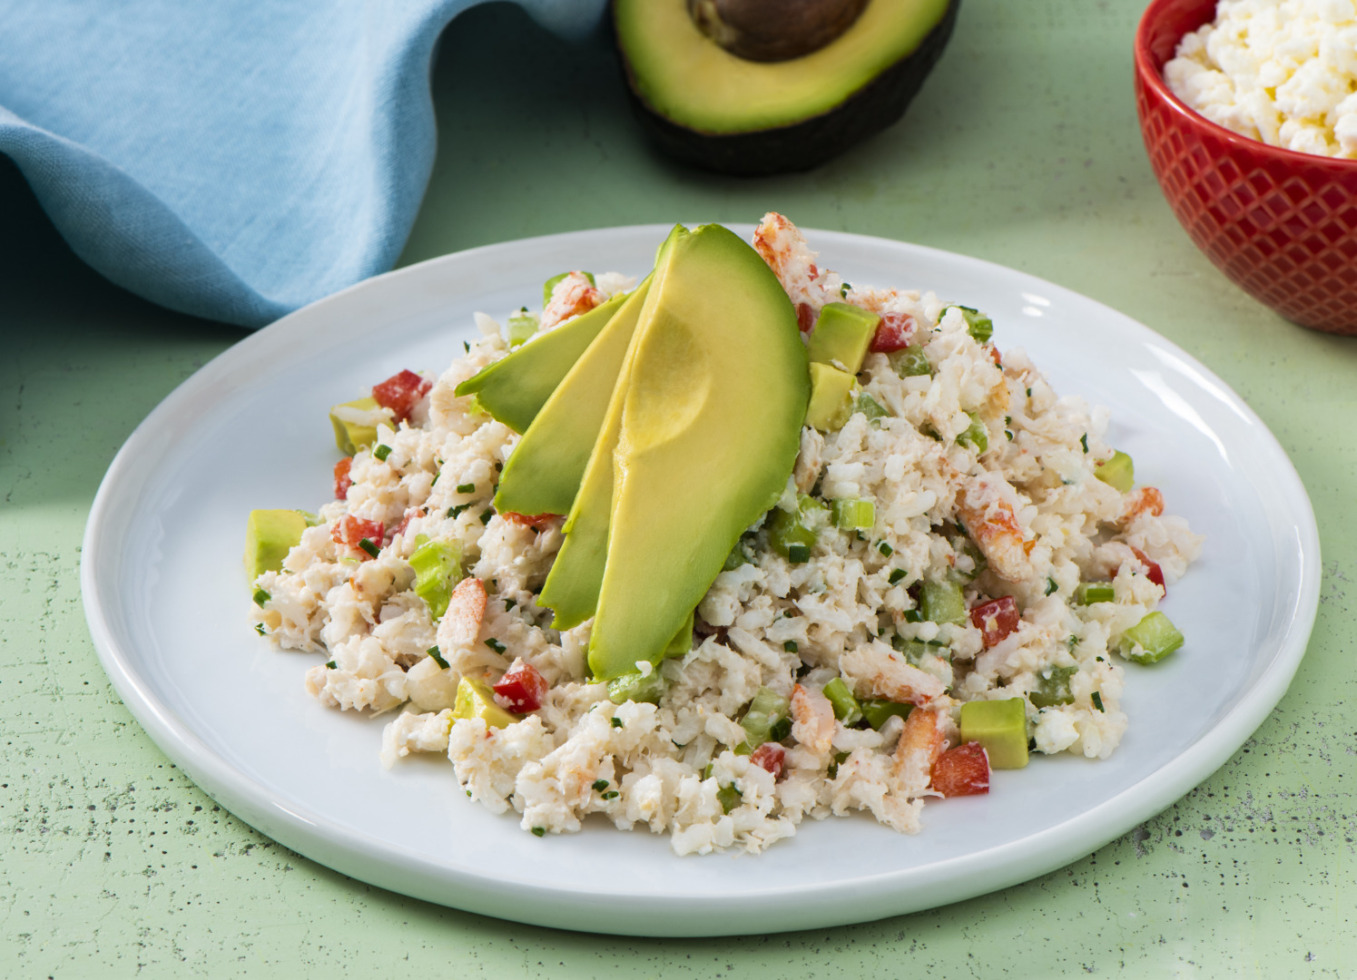 Creamy Avocado, Crab and Rice Salad